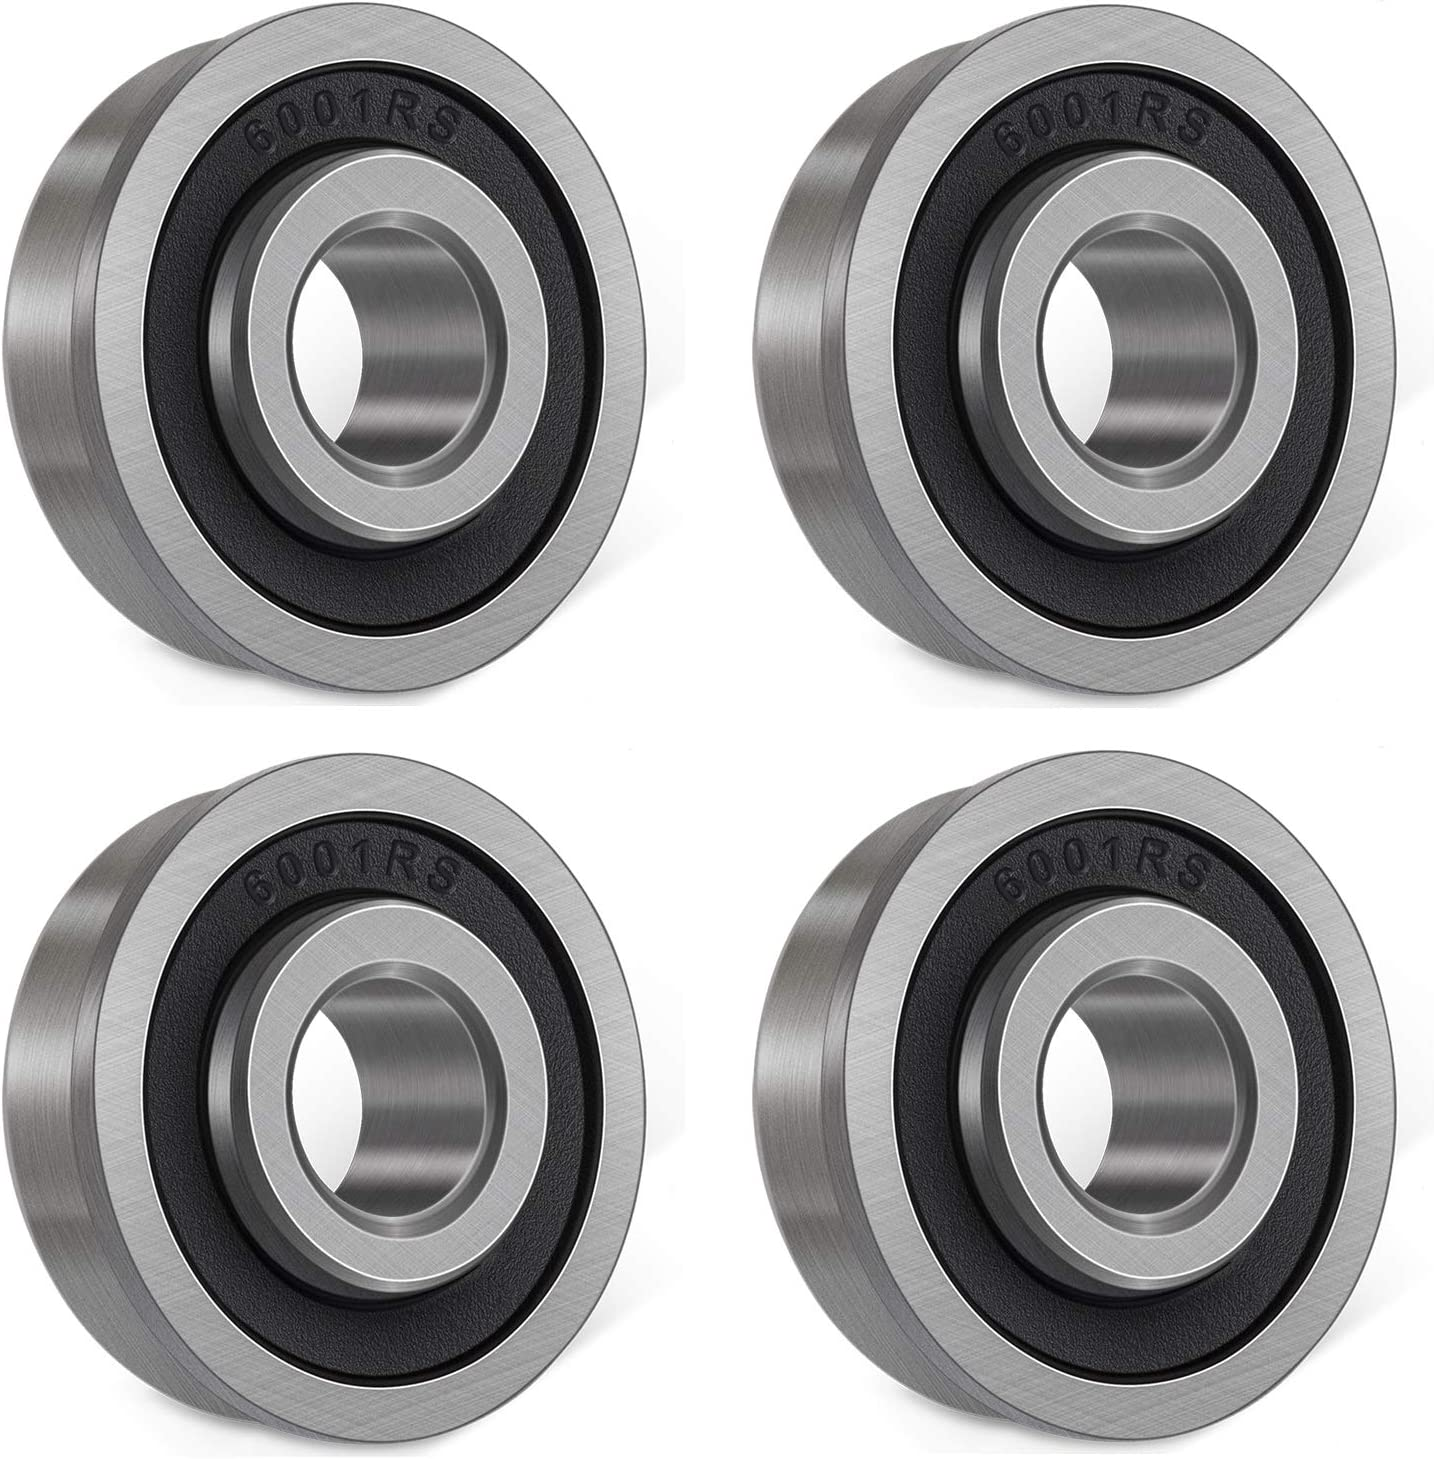 1//2 x 1-1//8 x 1//2 inch Double Seal Wheelbarrows Bonbo 4 Pcs Ball Bearings Carts and Hand Trucks Wheel Hub Deep Groove Ball Bearings for Lawn Mower